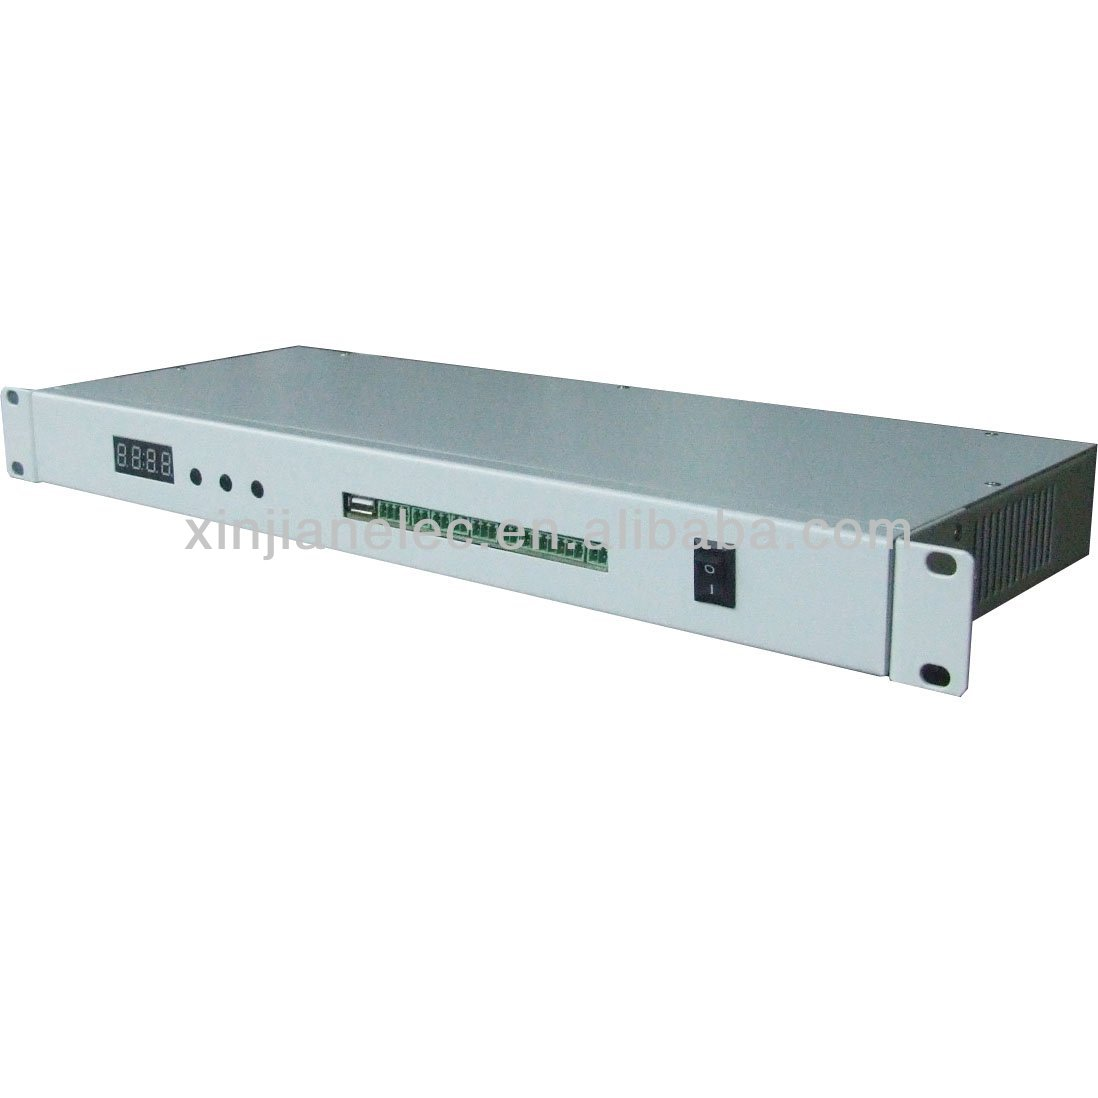 Intelligent environmental monitoring system for server room